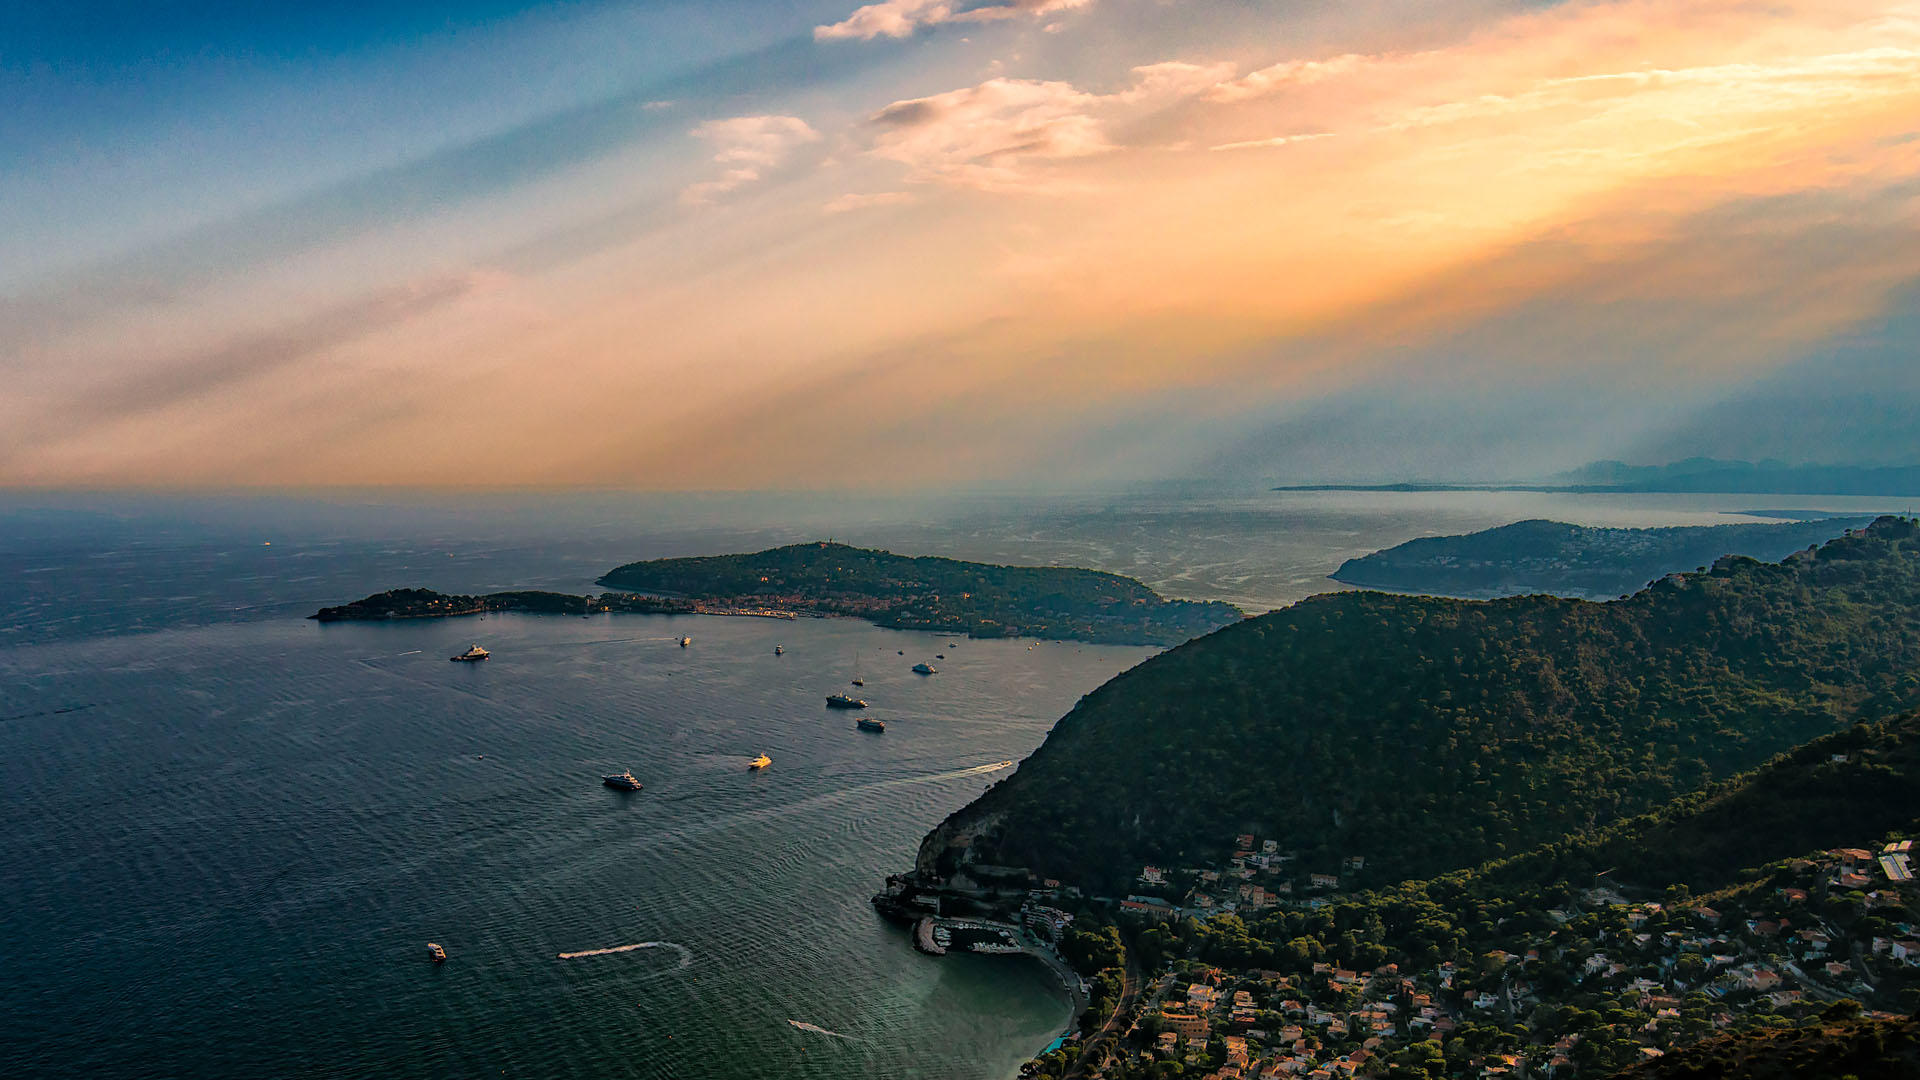 View from Eze, French Riviera